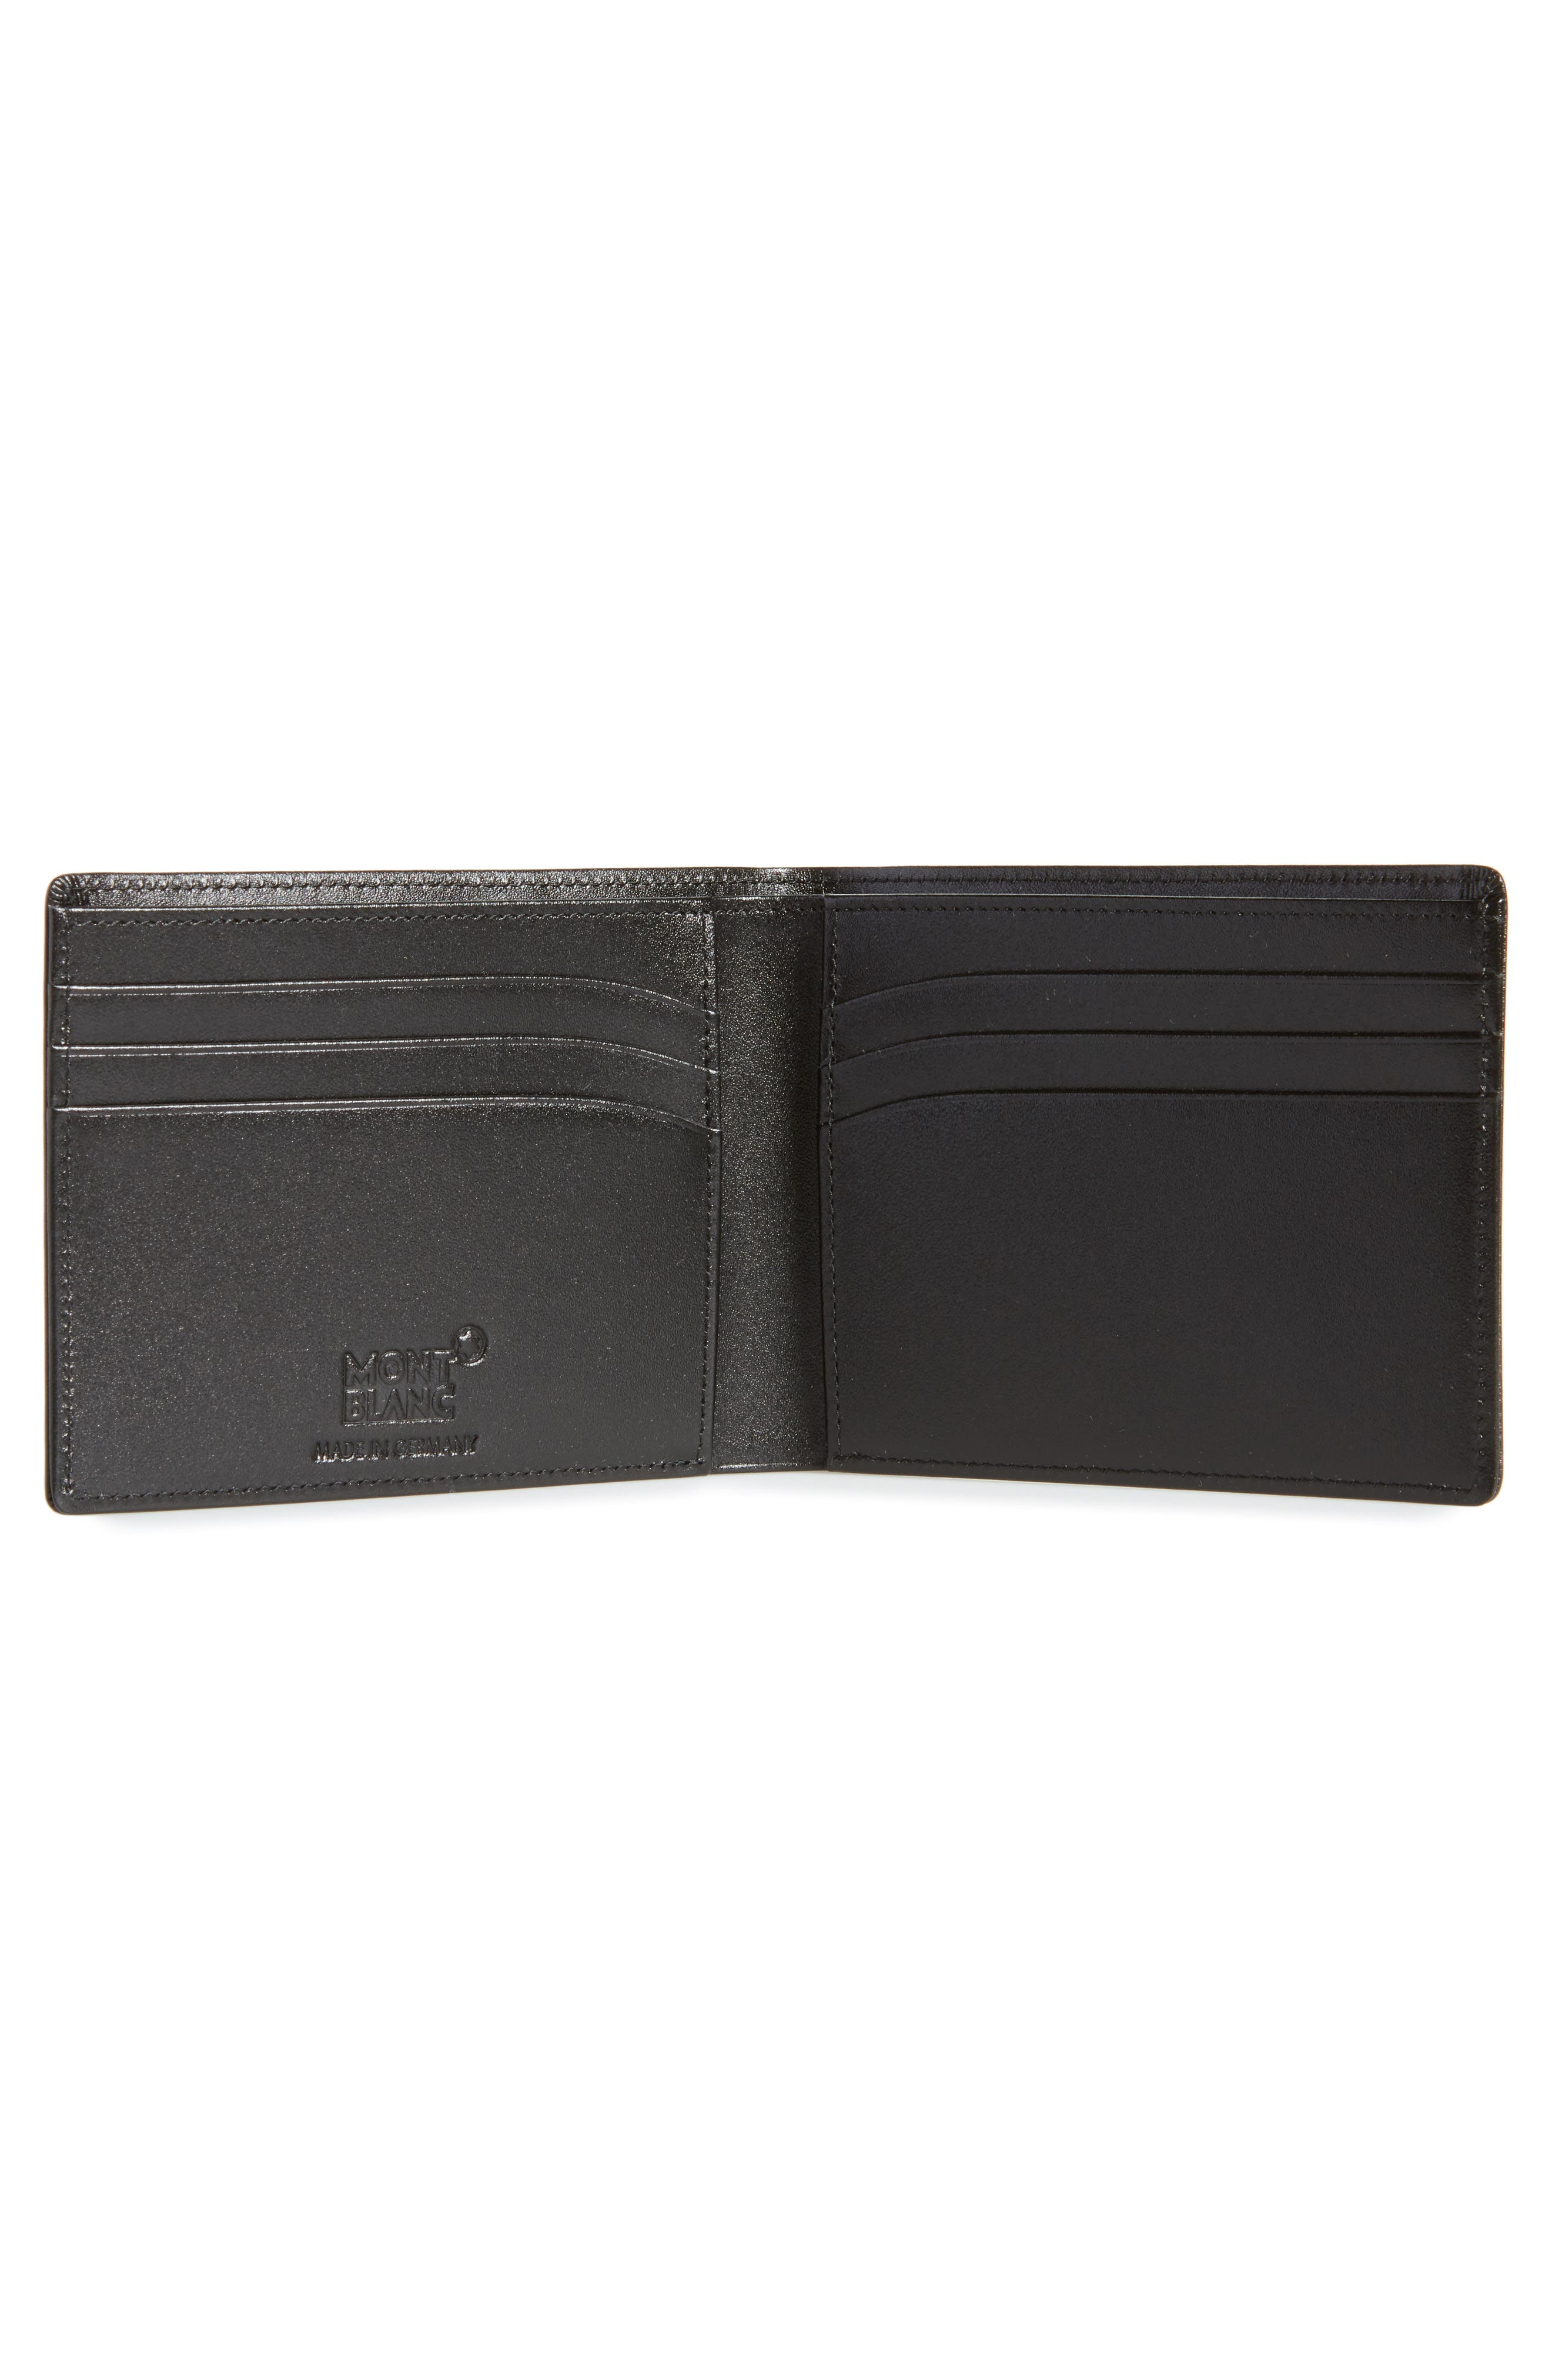 Bifold Leather Wallet,                             Alternate thumbnail 2, color,                             No Color